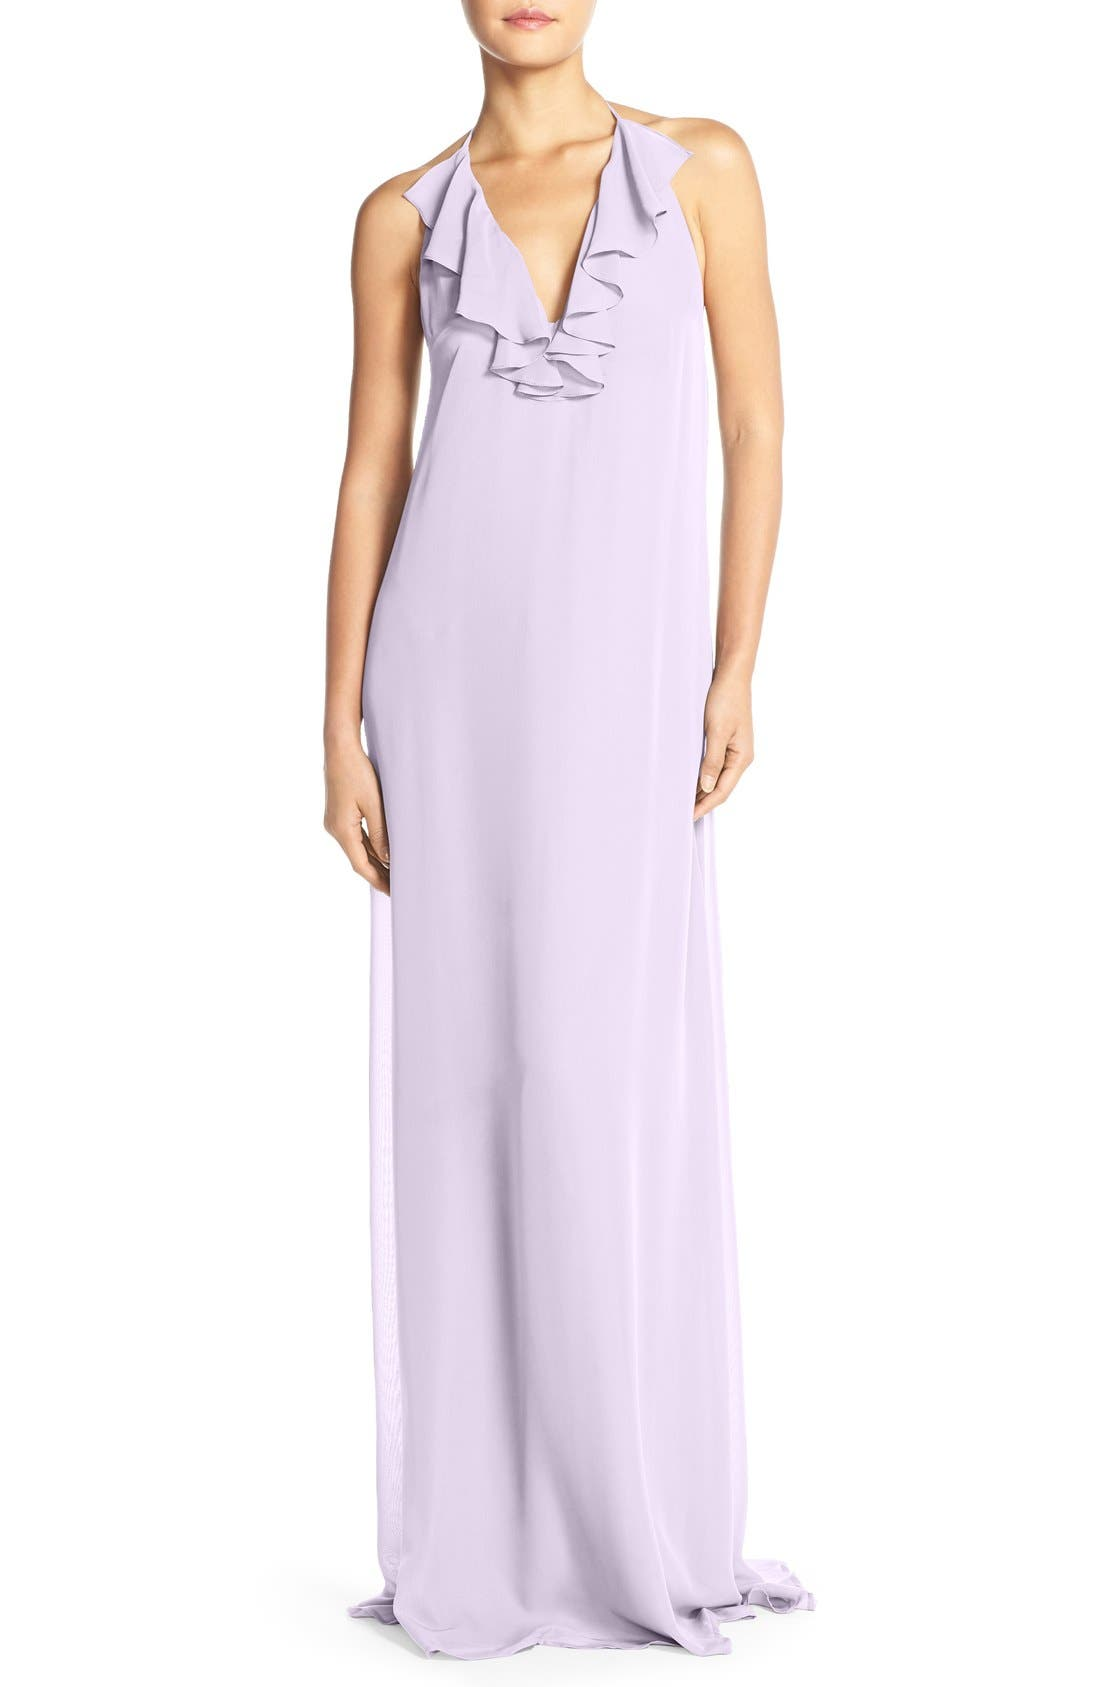 Alternate Image 1 Selected - nouvelle AMSALE 'Daryl' Ruffle Neck Chiffon Halter Gown